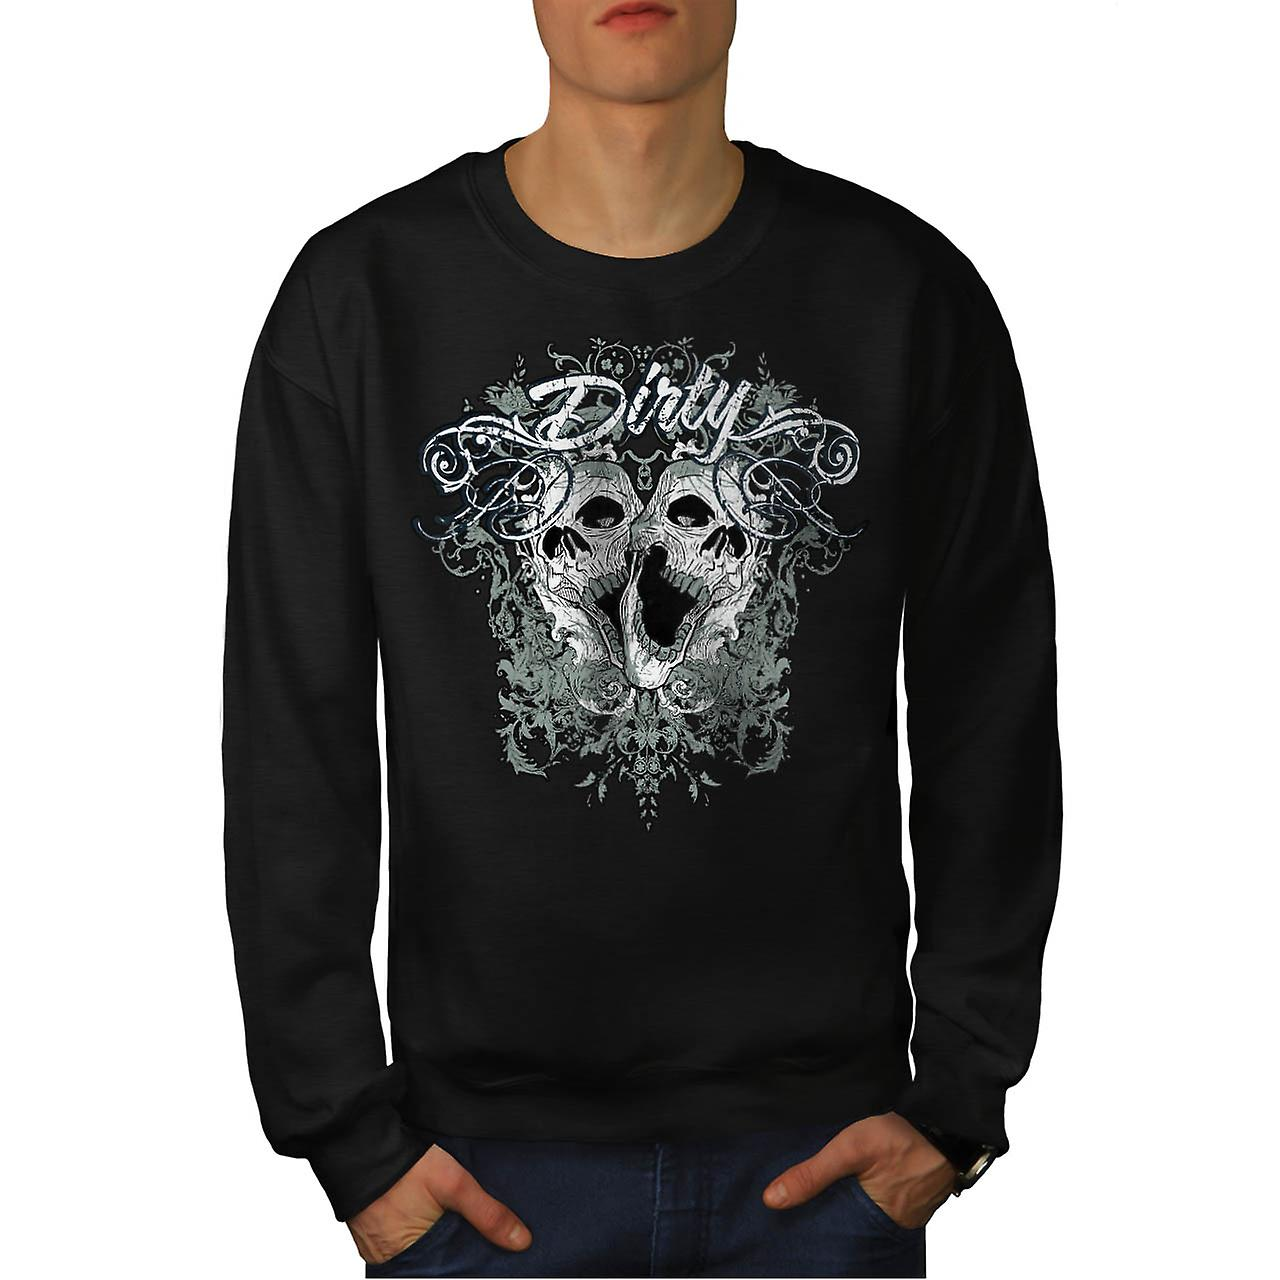 Sale Yard Grave mal crâne Dead Men Black Sweatshirt | Wellcoda